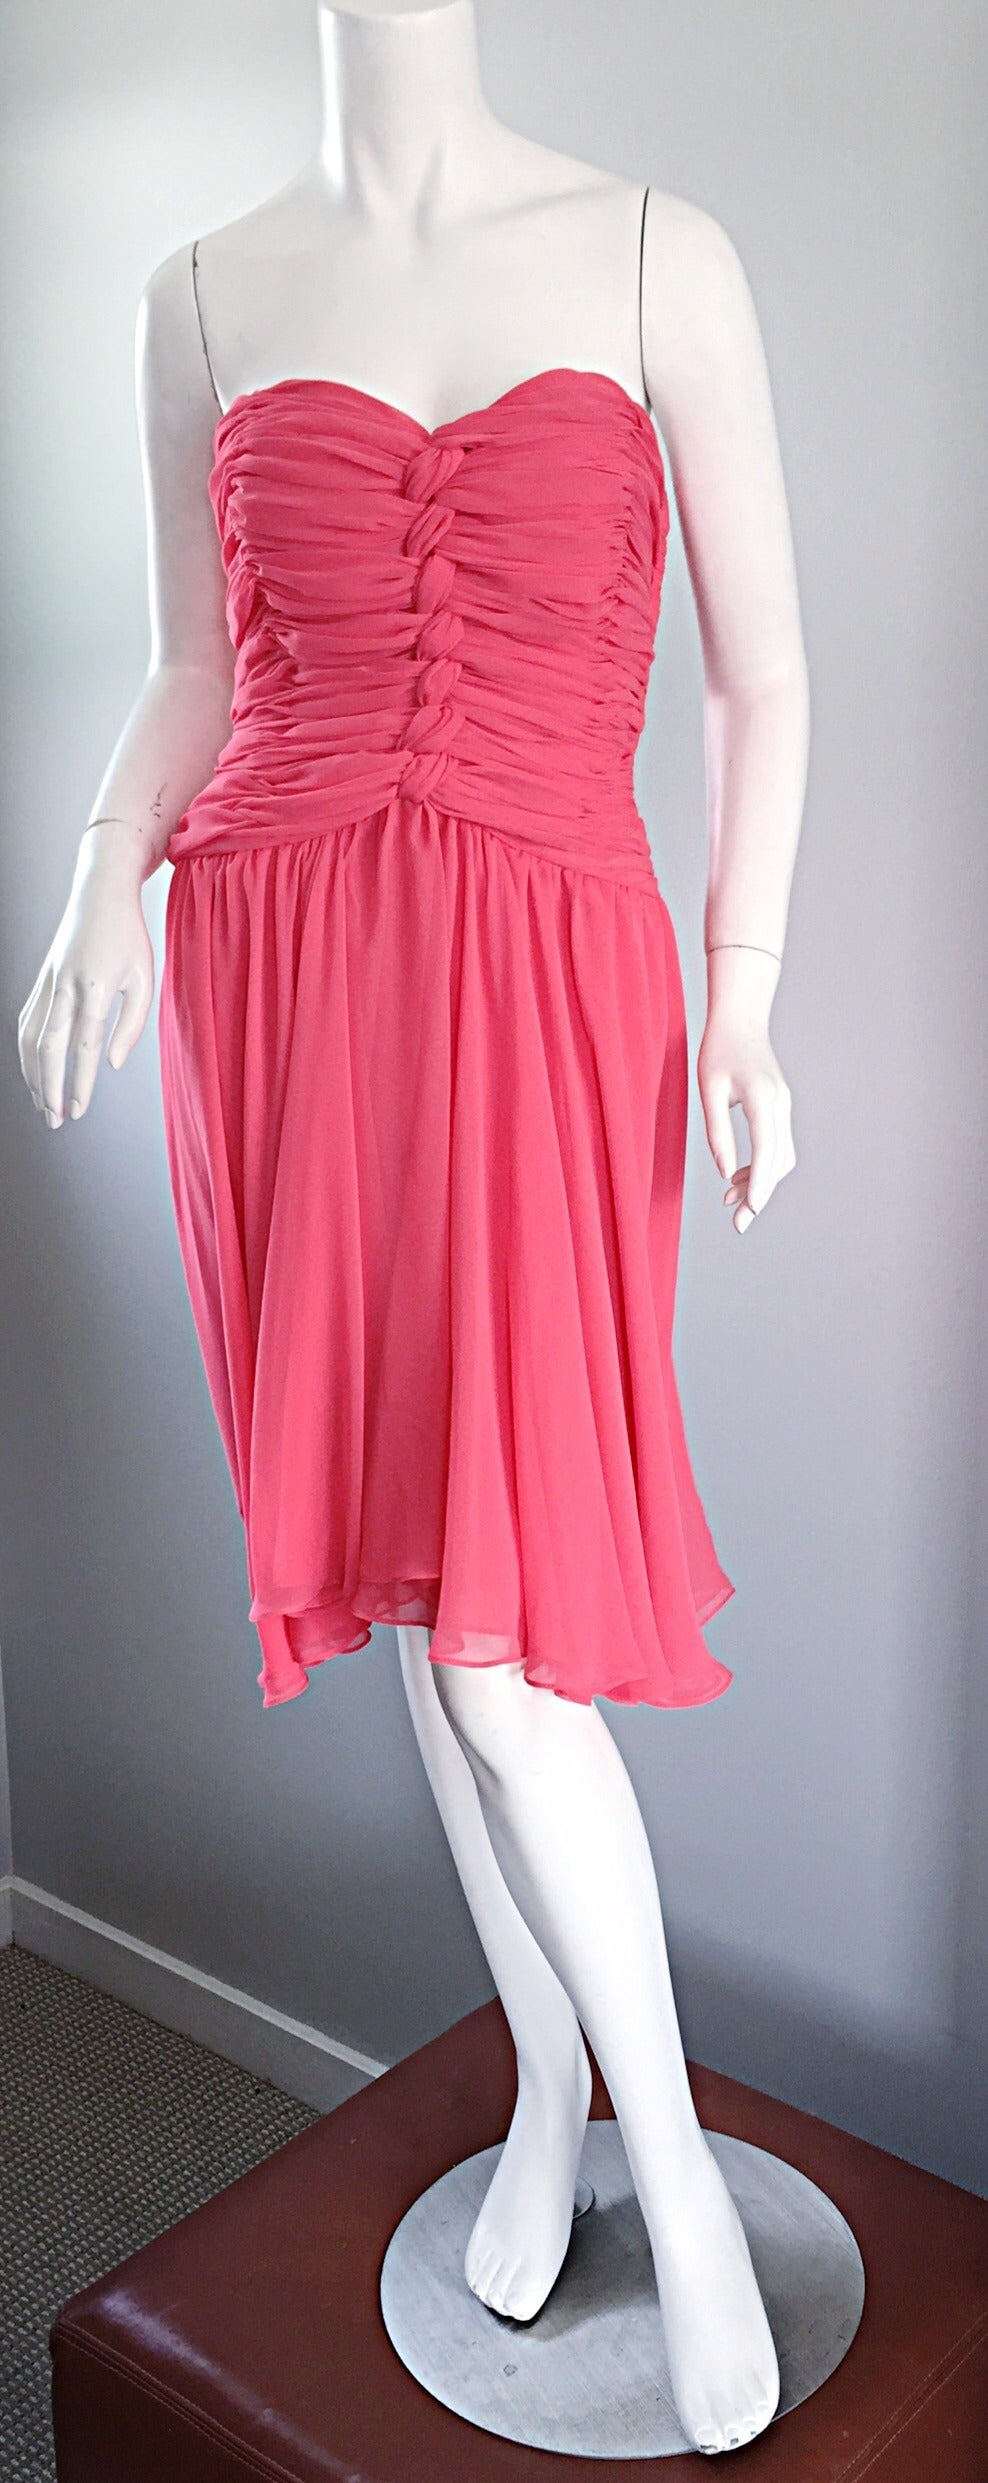 Victor Costa Coral Pink Strapless Flowy Knotted Vintage Cocktail Dress Size 8 10 For Sale 1